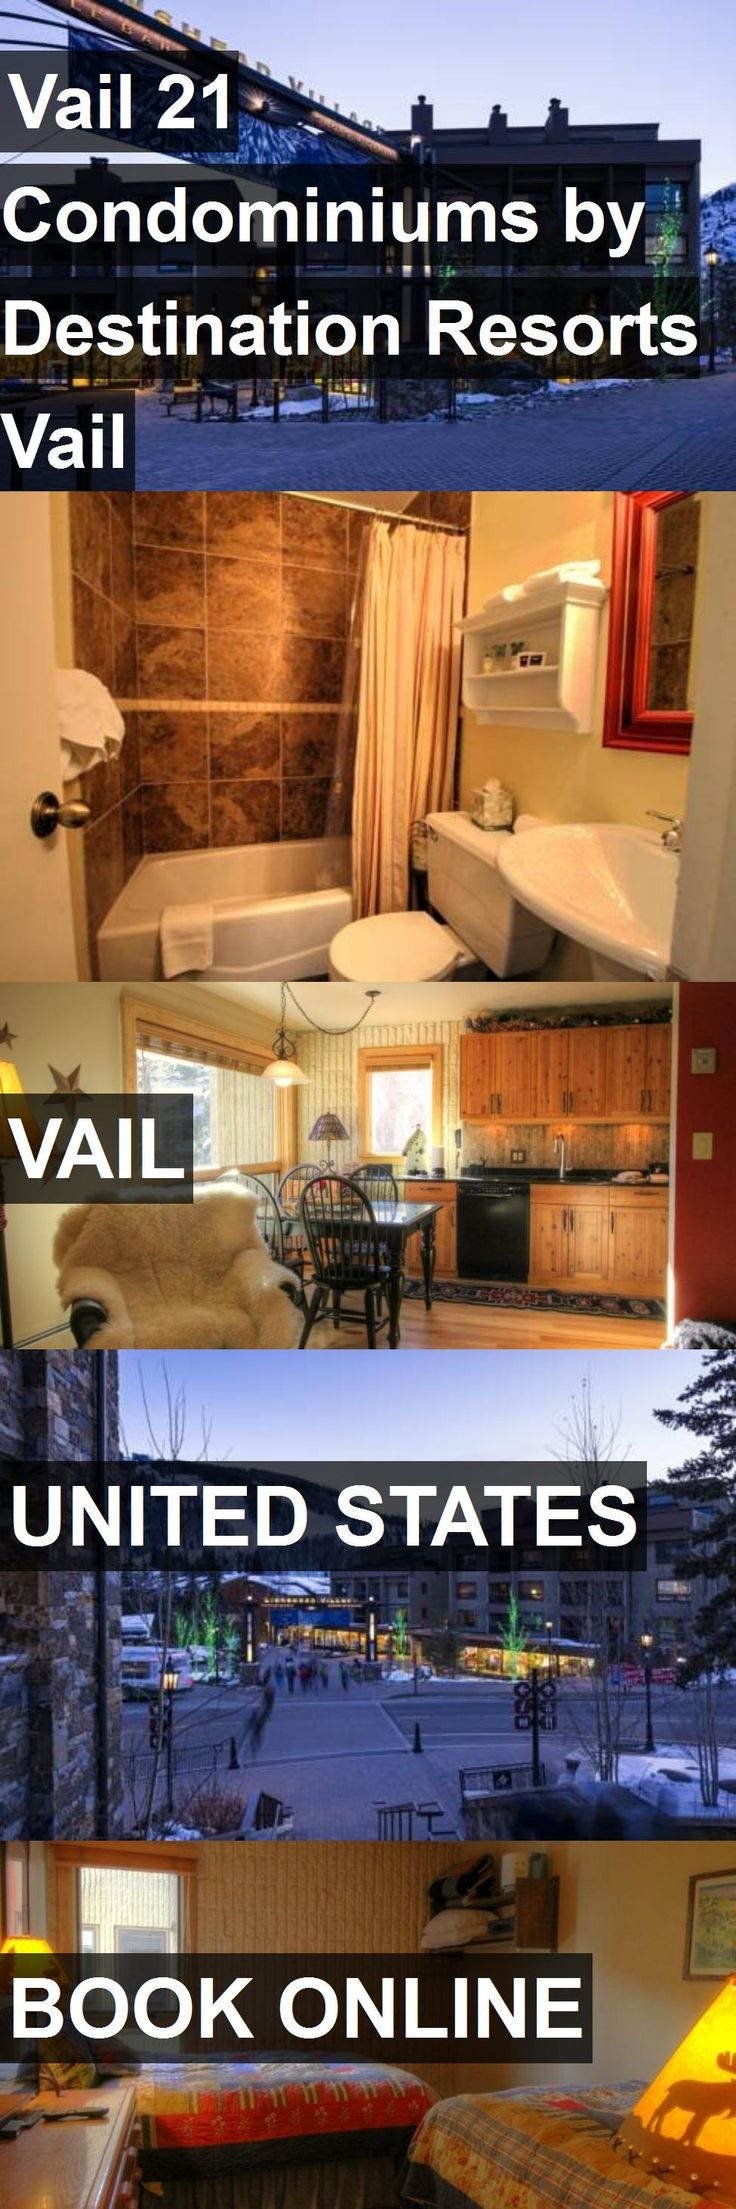 Hotel Vail 21 Condominiums by Destination Resorts Vail in Vail, United States. For more information, photos, reviews and best prices please follow the link. #UnitedStates #Vail #travel #vacation #hotel